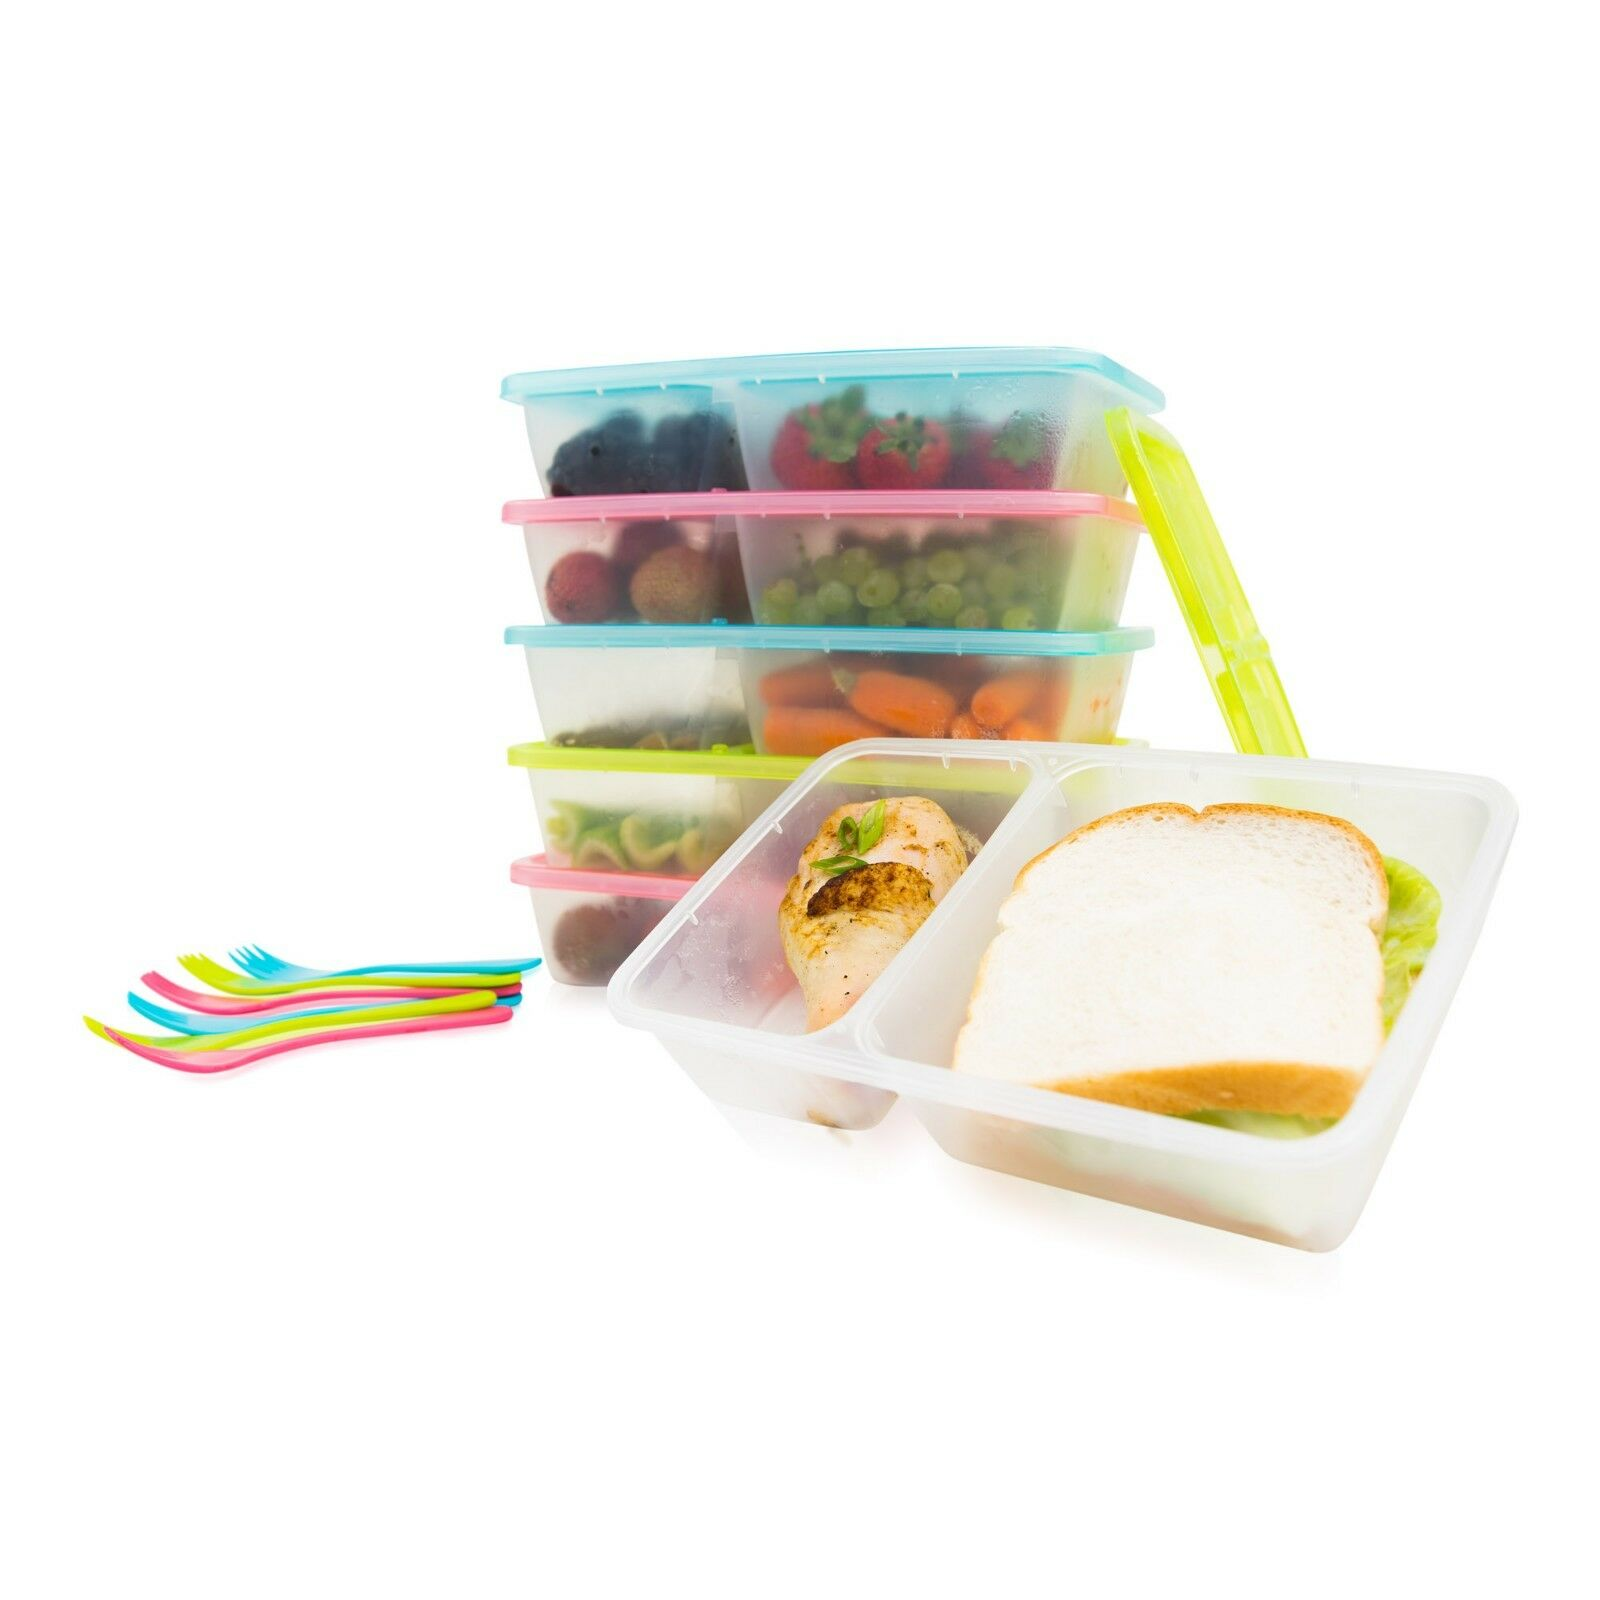 6-Pack Meal Prep Lunch Box Food Containers Set + Free Forks!!! 3